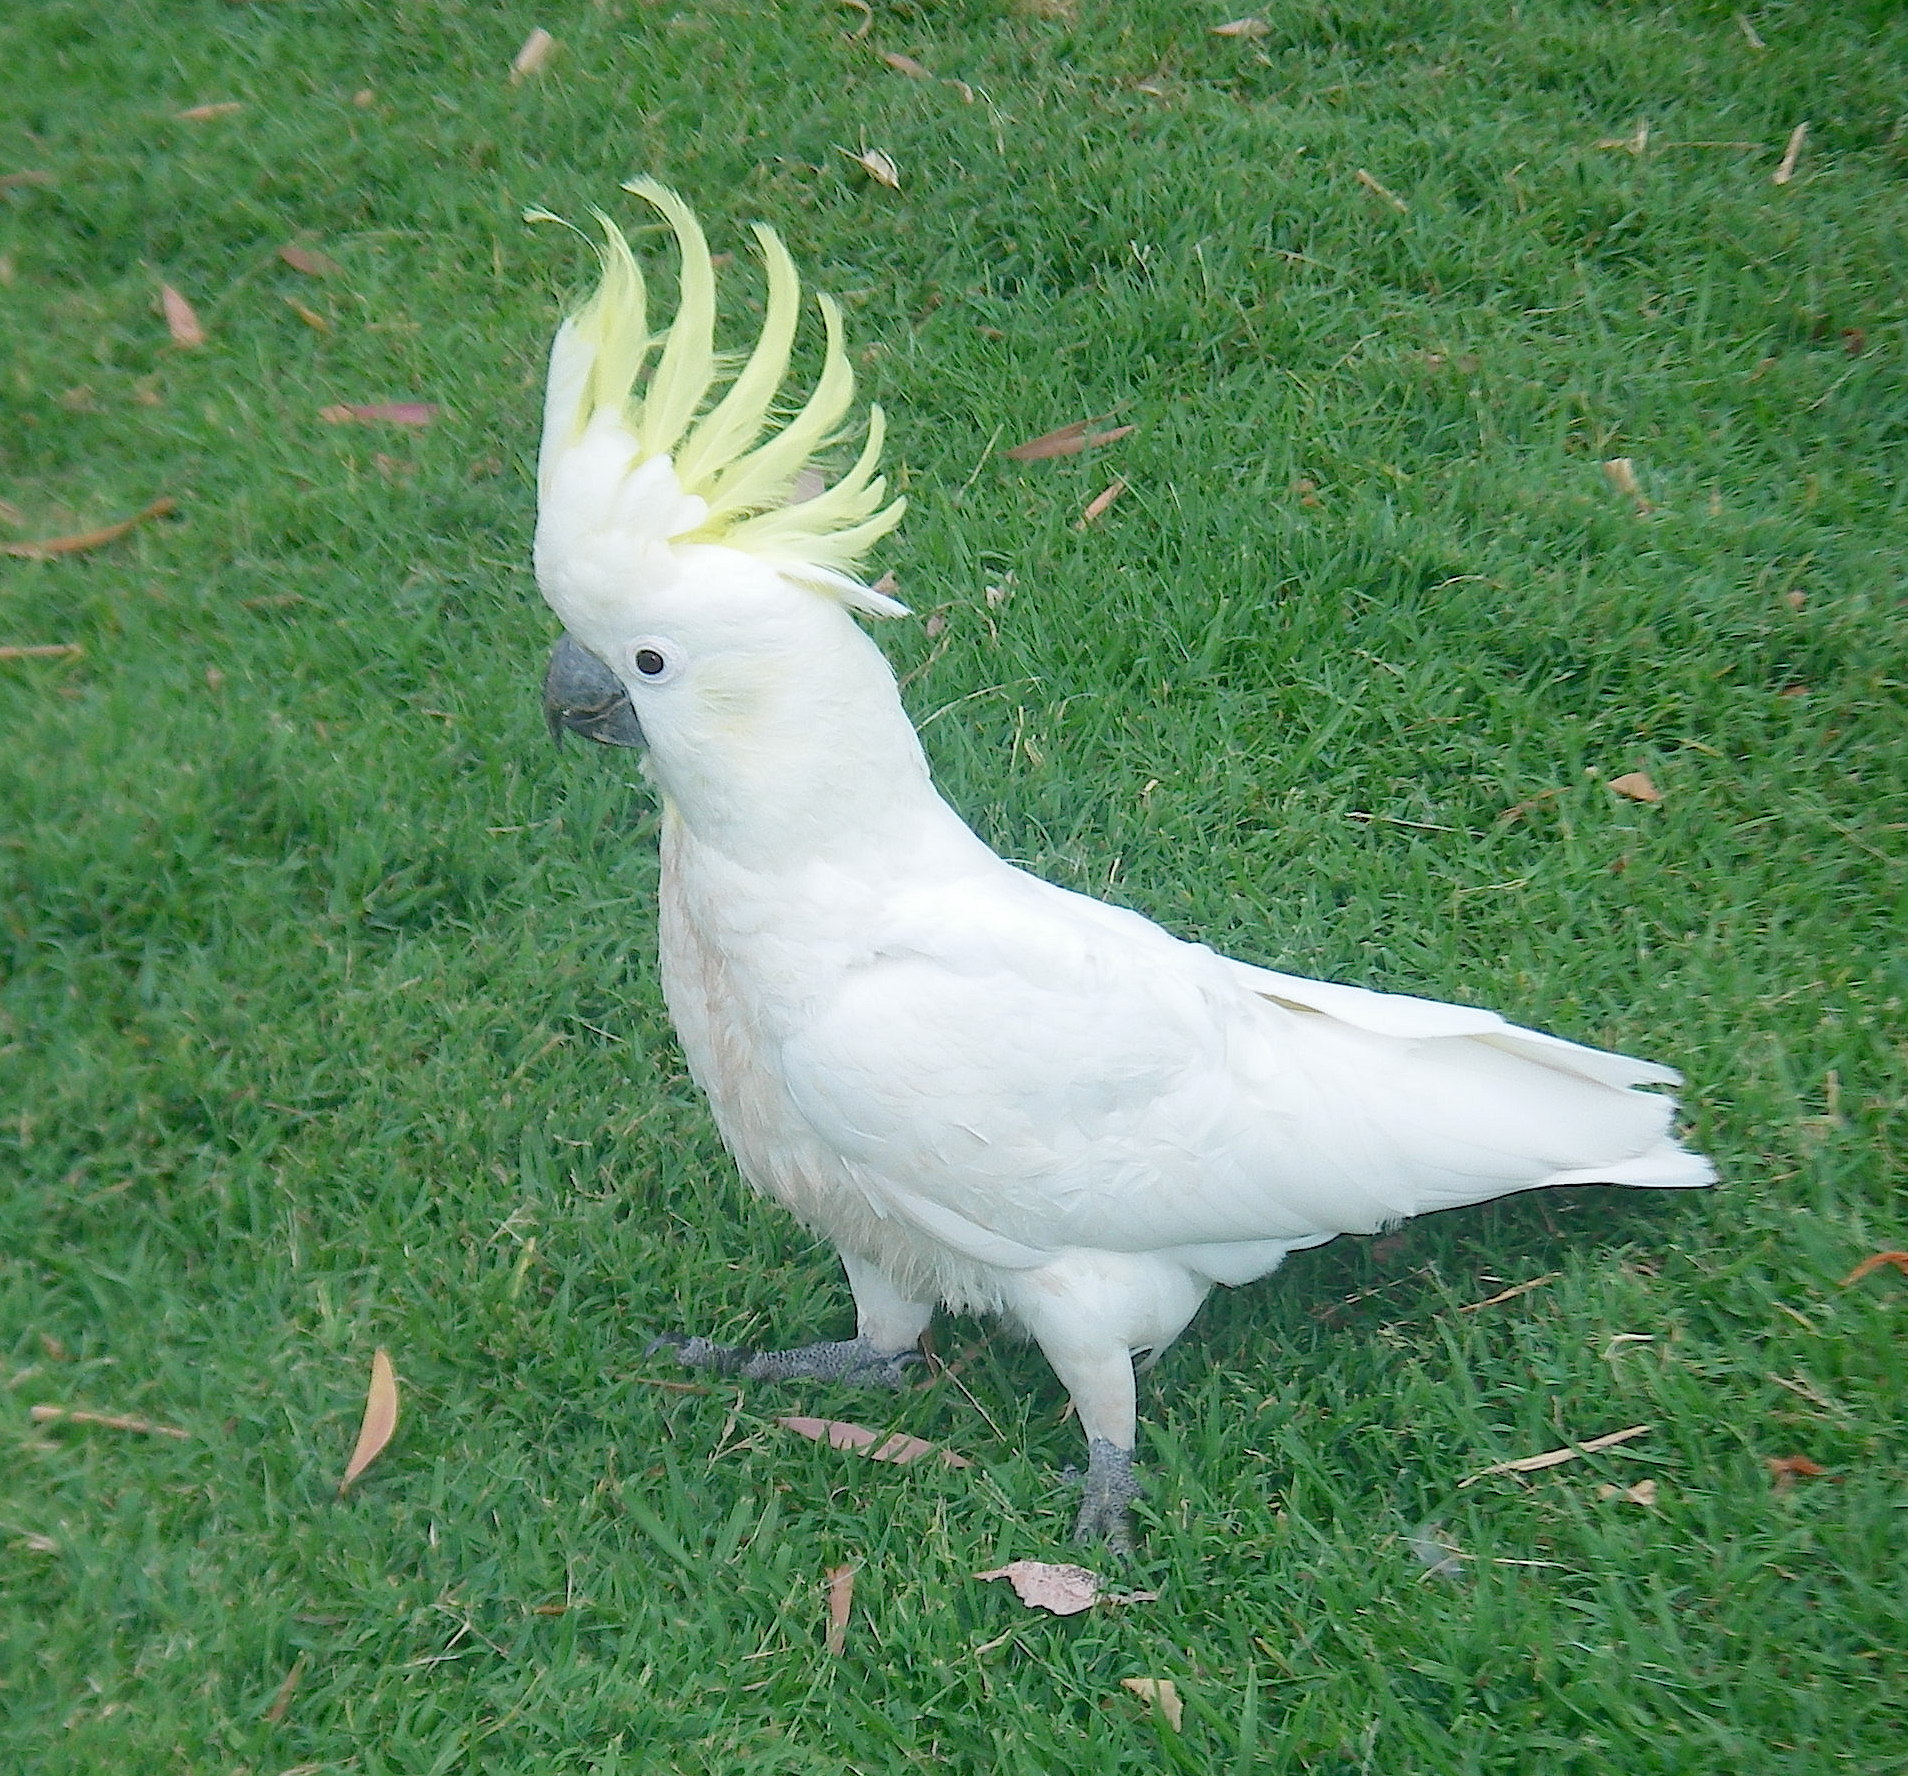 51.2. Birds - A yellow crested cockatoo warns another bird to stay away in Sydney, Australia, November 2015